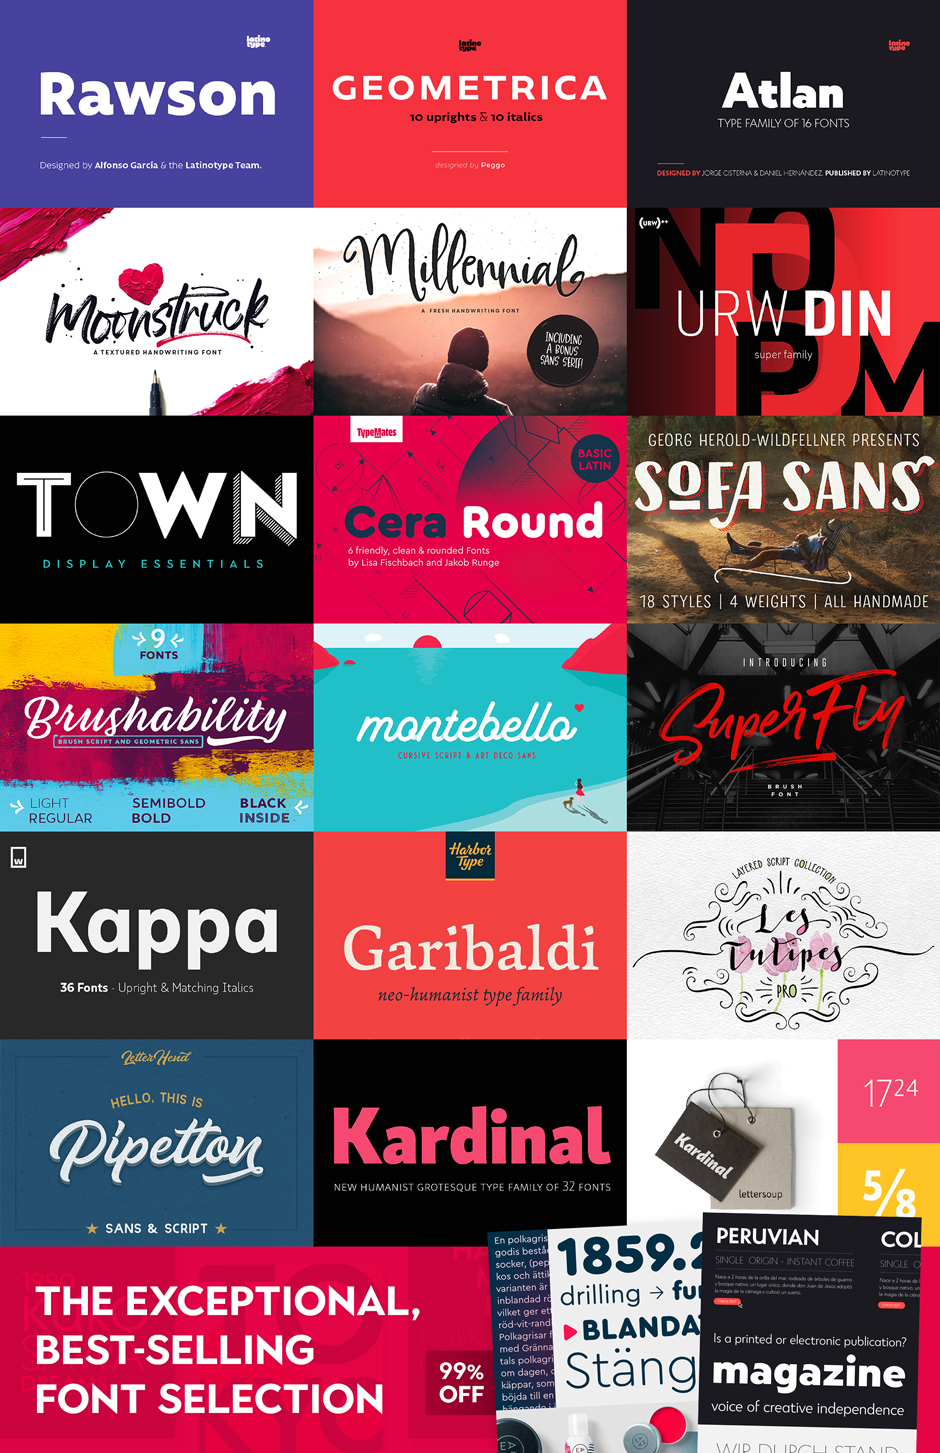 The Exceptional, Best-Selling Font Selection, 99% Off